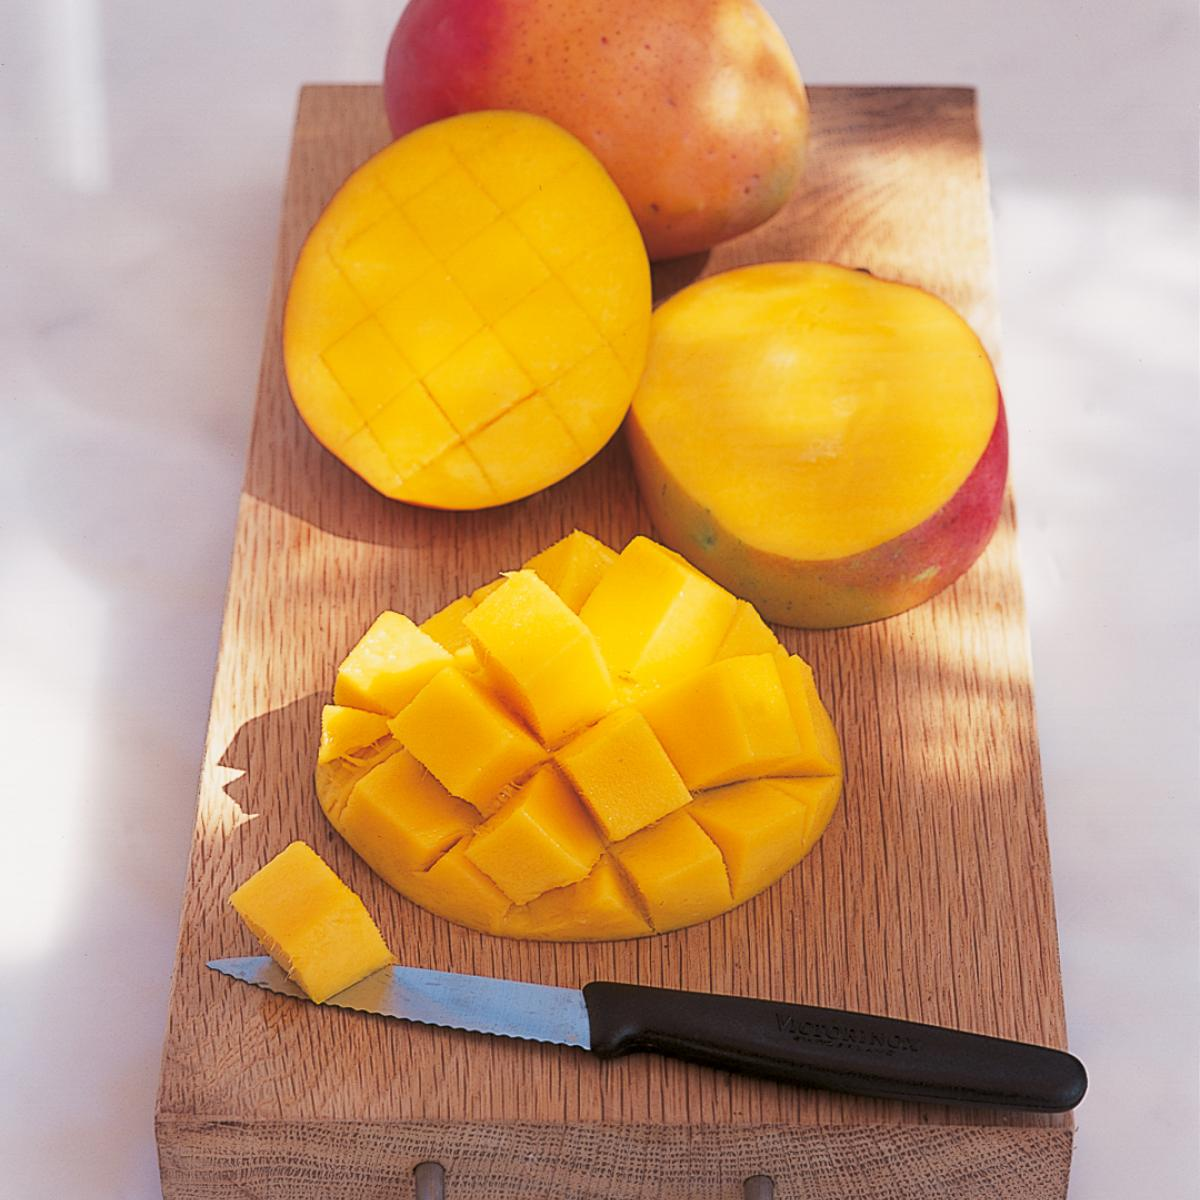 A picture of Delia's How to prepare and serve a mango how to cook guide